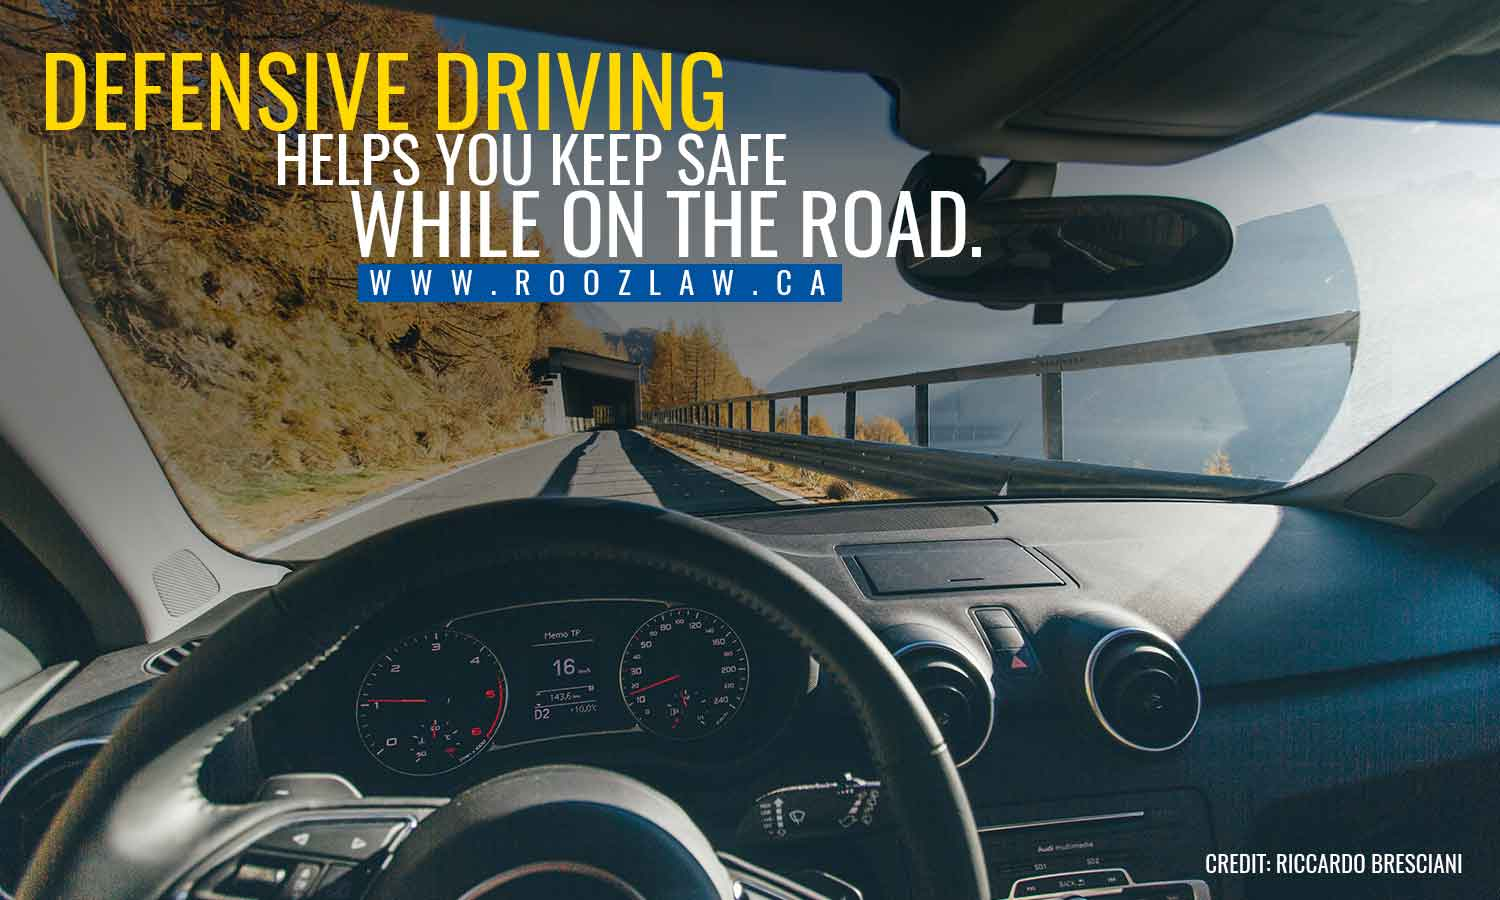 Defensive-driving-helps-you-keep-safe-while-on-the-road